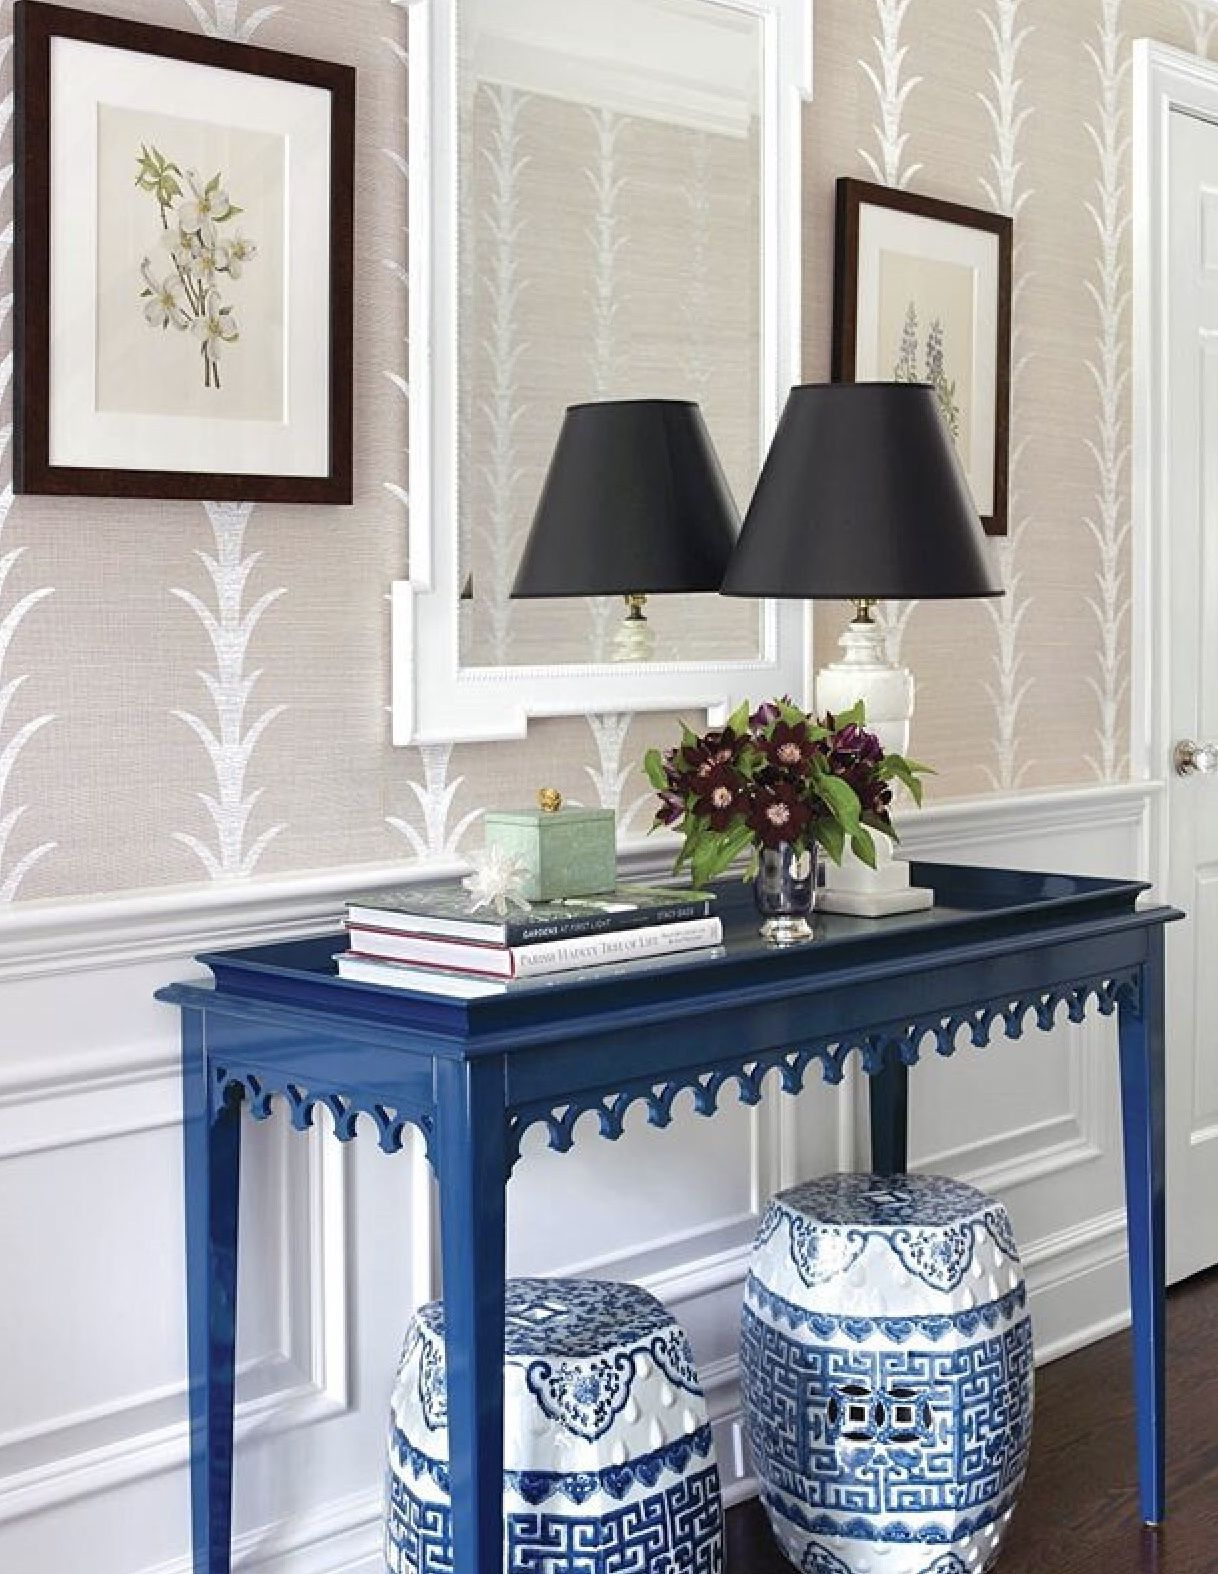 Traditional hallway wallpaper  Pin by Jacqueline R Maume on Blue and white  Pinterest  Blue and